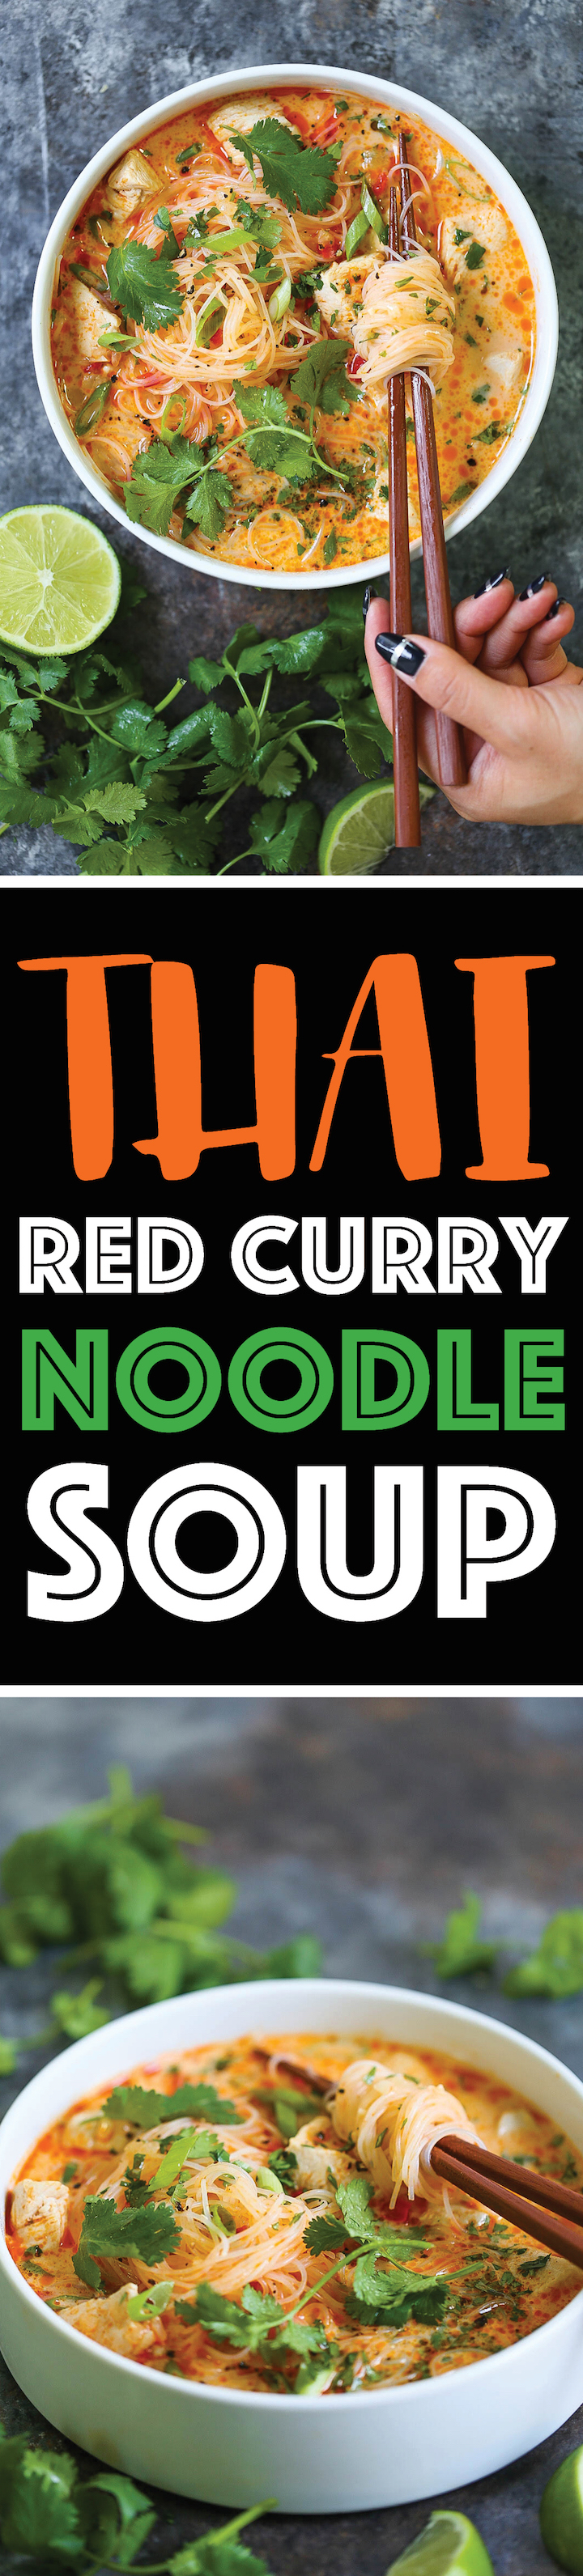 Thai Red Curry Noodle Soup - Yes, you can have Thai takeout right at home! This soup is packed with so much flavor with bites of tender chicken, rice noodles, cilantro, basil and lime juice! So cozy, comforting and fragrant - plus, it's easy enough for any night of the week!